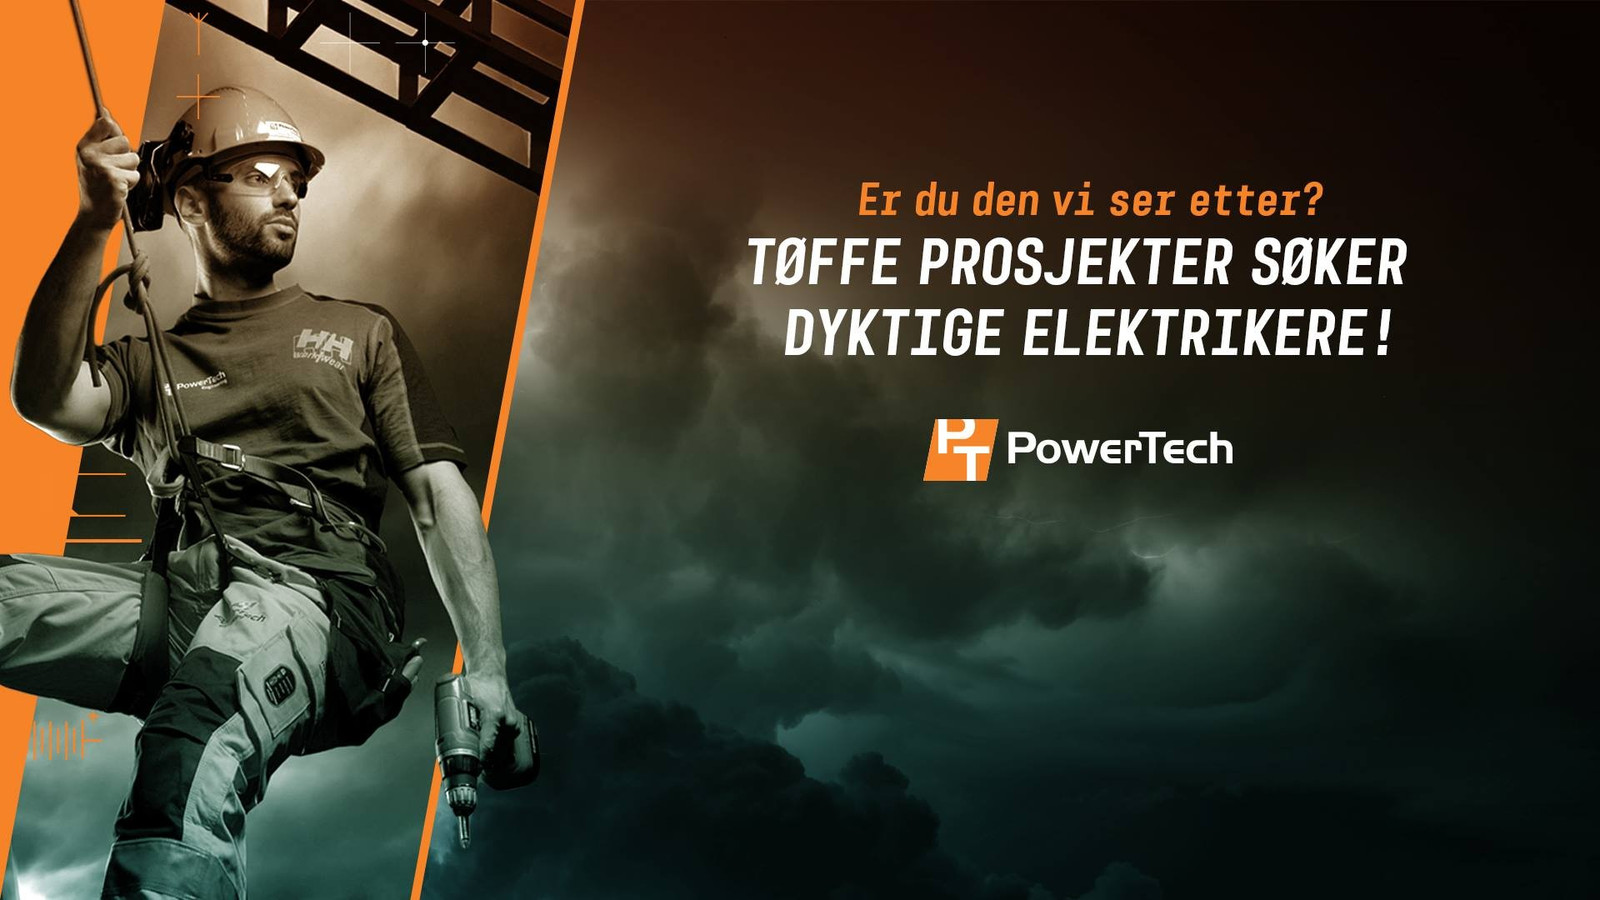 POWERTECH SOLUTIONS AS